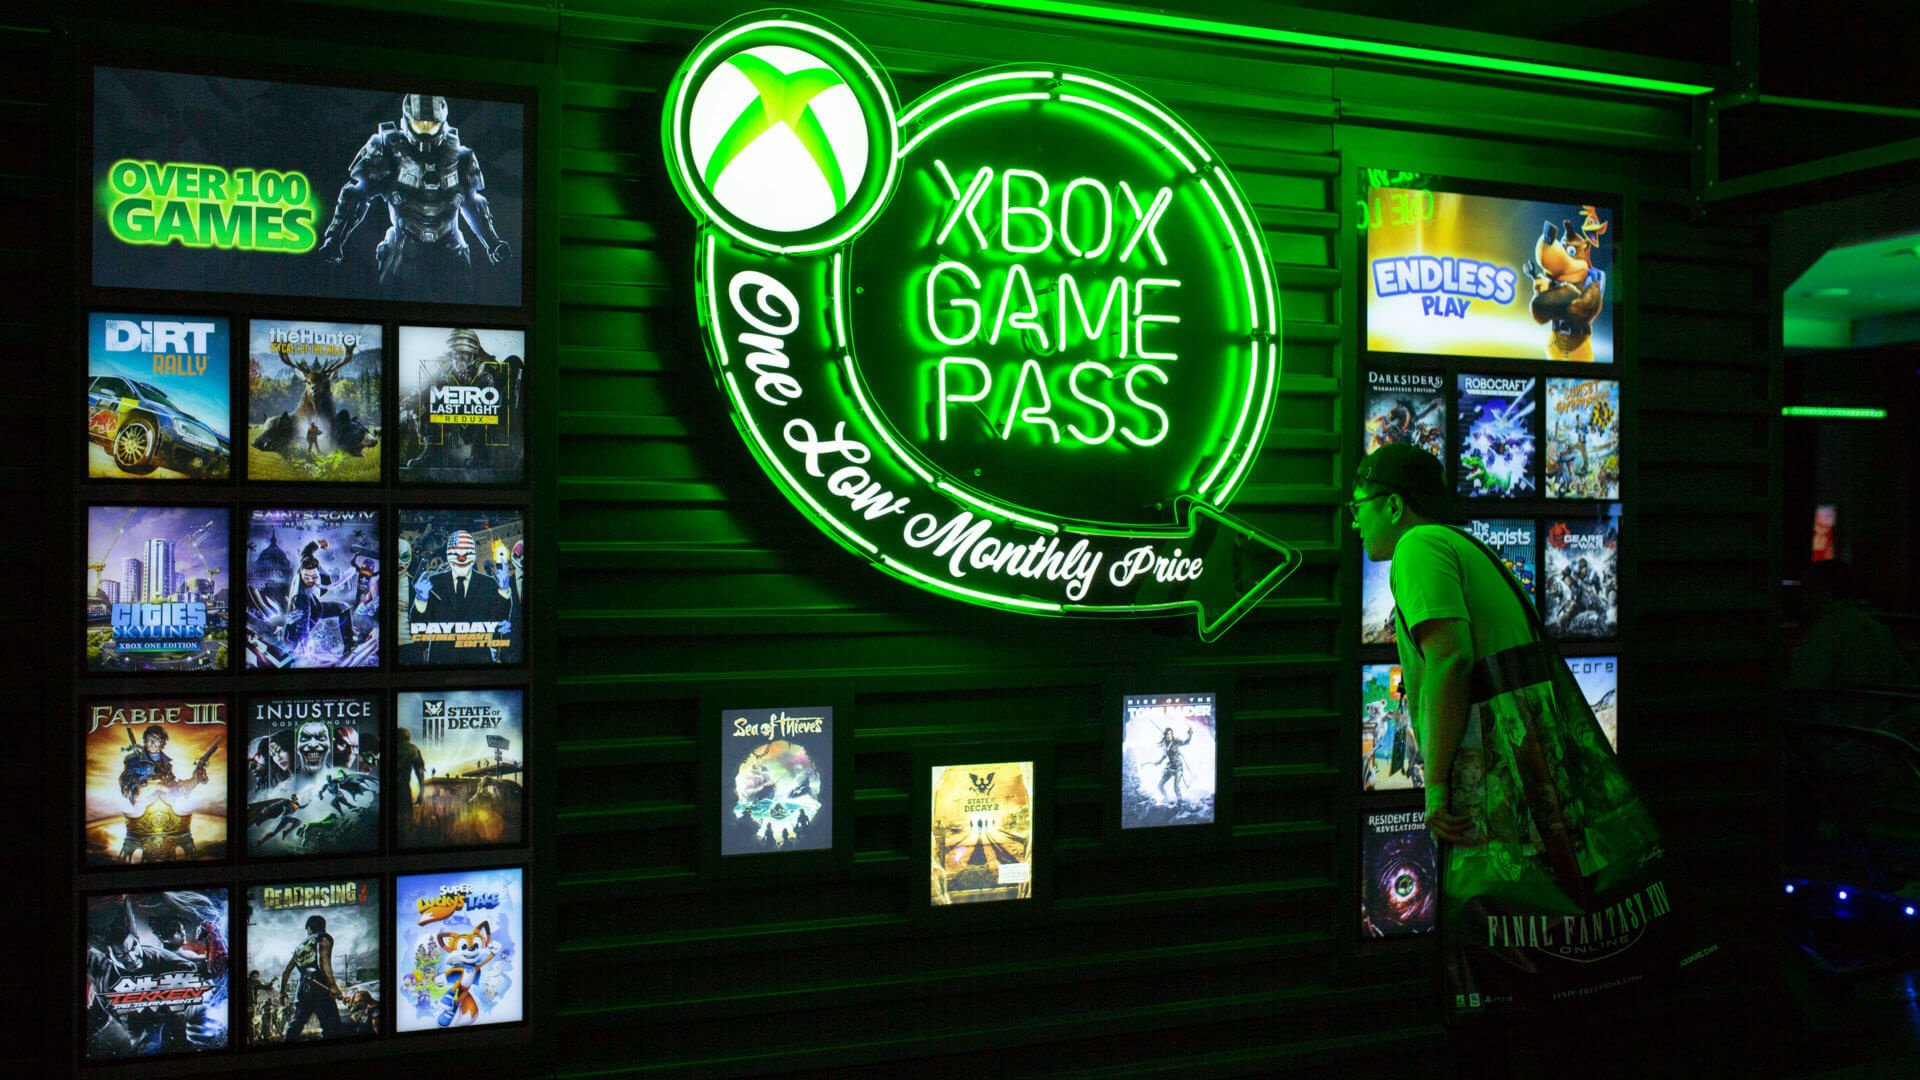 Microsoft Reiterates That It Would Like To See Xbox Game Pass On Other Platforms